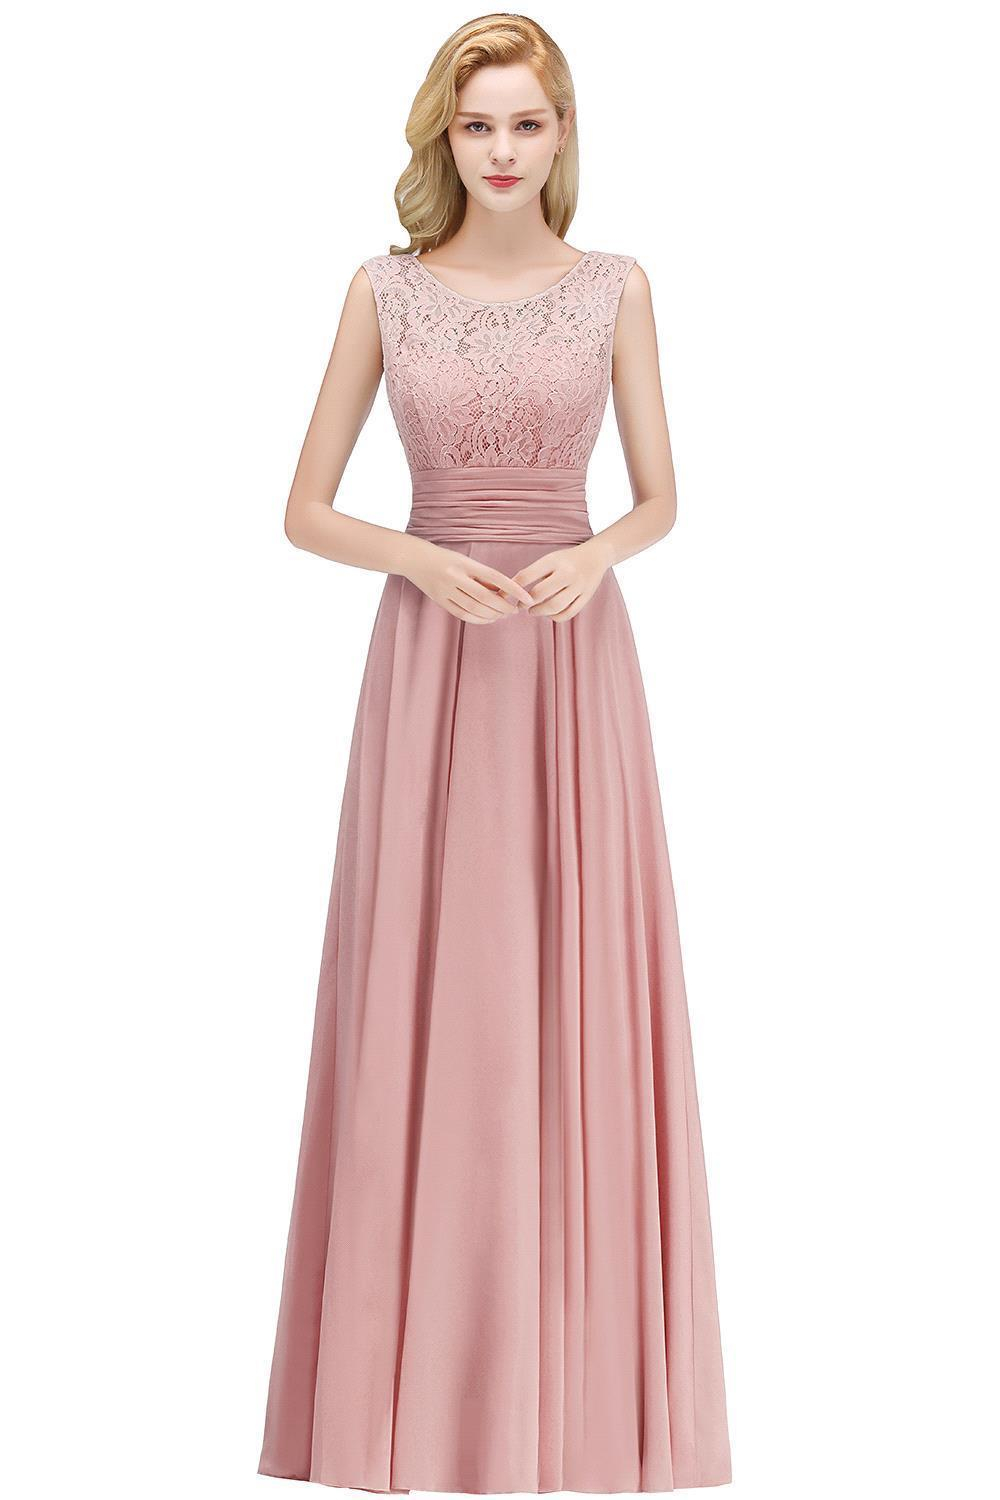 Elegant Lace Long Bridesmaid Dresses 2019 Sleeveless Chiffon Ruched Wedding Guest Maid Of Honor Party Dresses